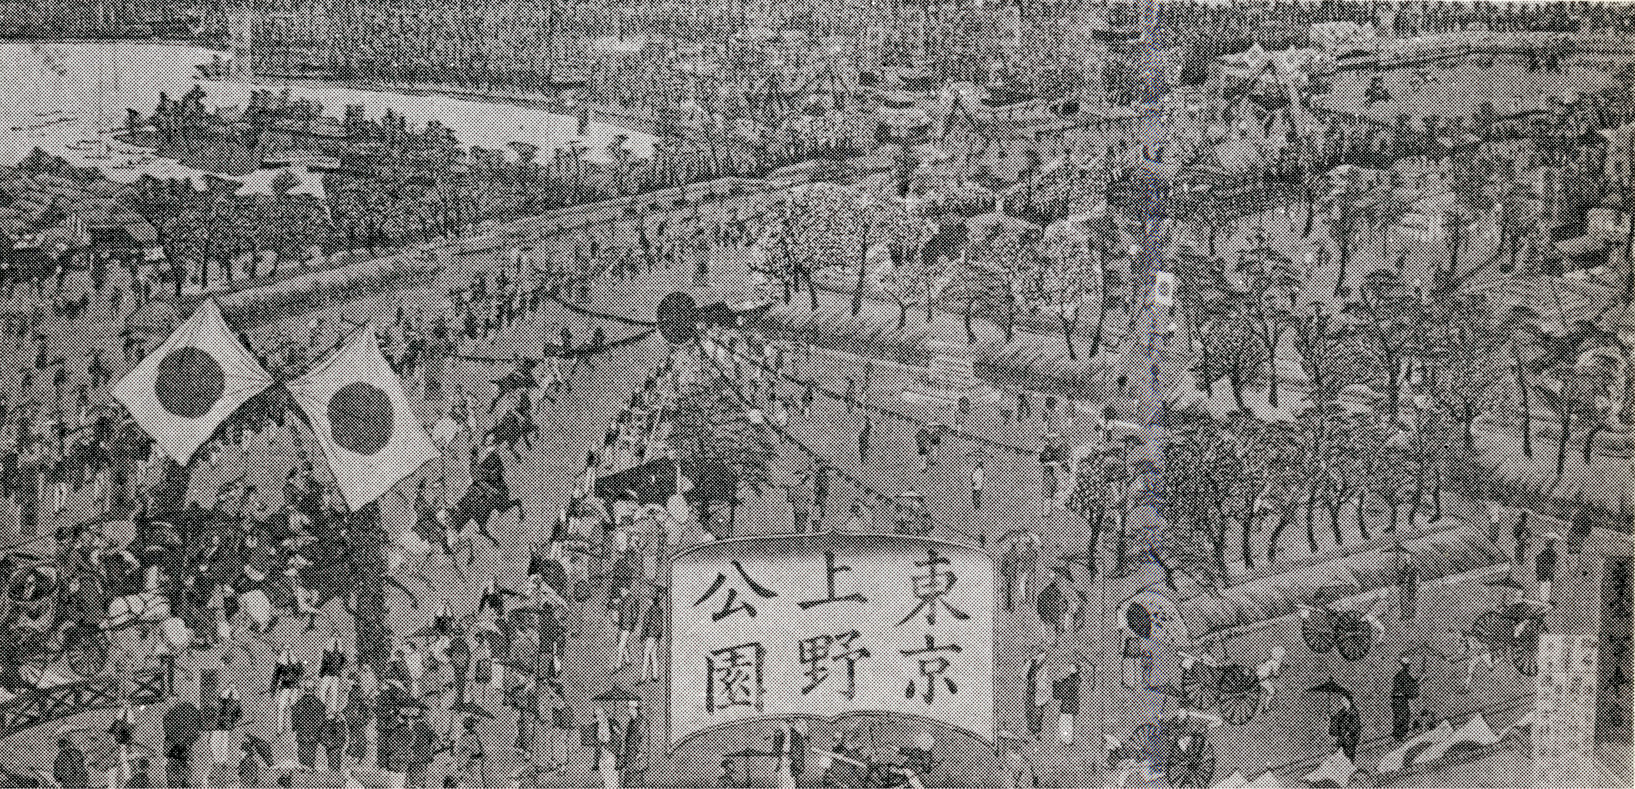 The First National Industrial Exhibition (from the collection of Kotaro Tanaka).